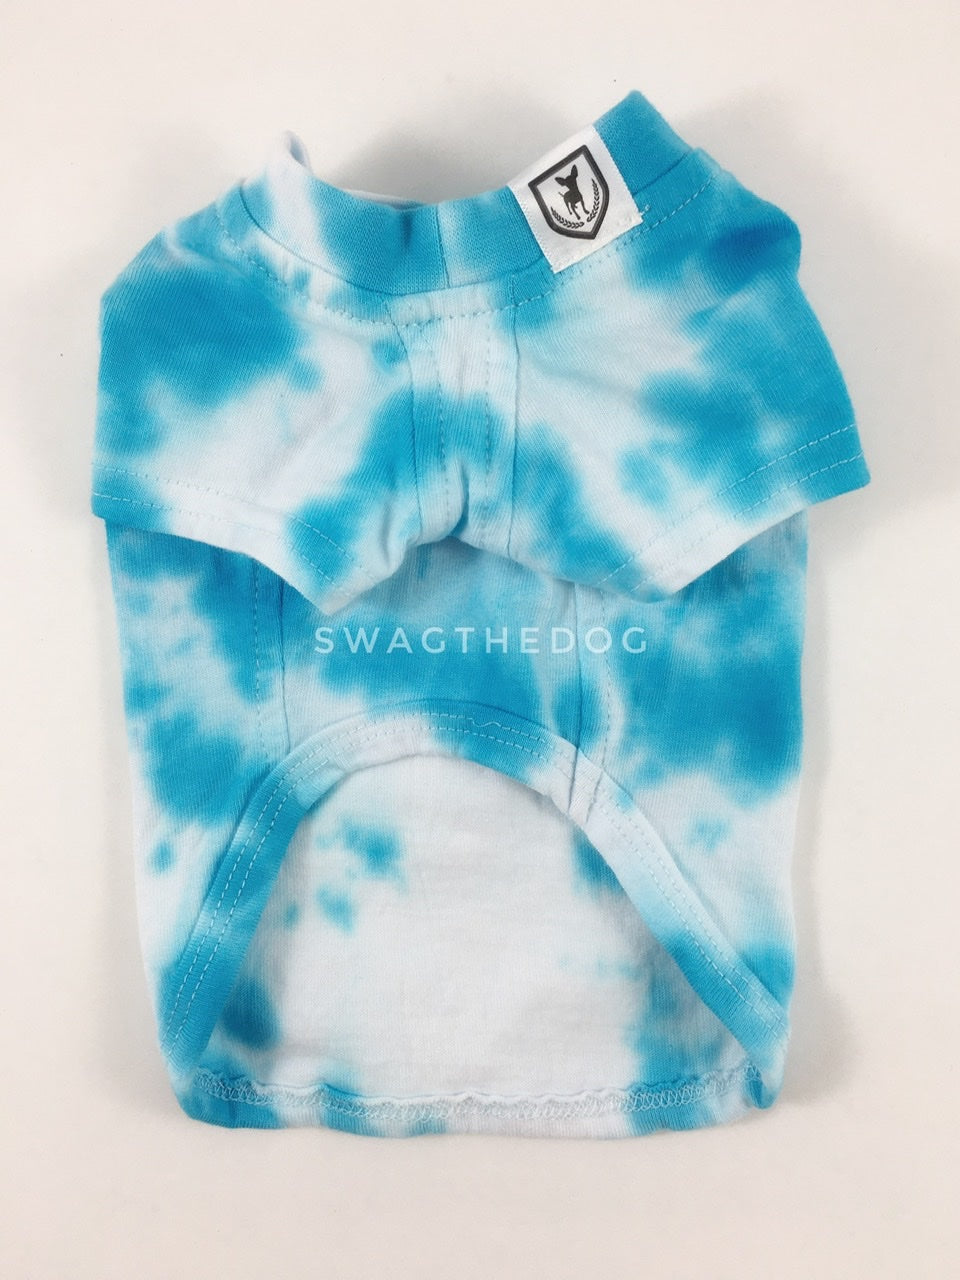 Swagadelic Sky Blue Tie Dye Tee - Product front view. The hand tie-dyed tee with Sky Blue